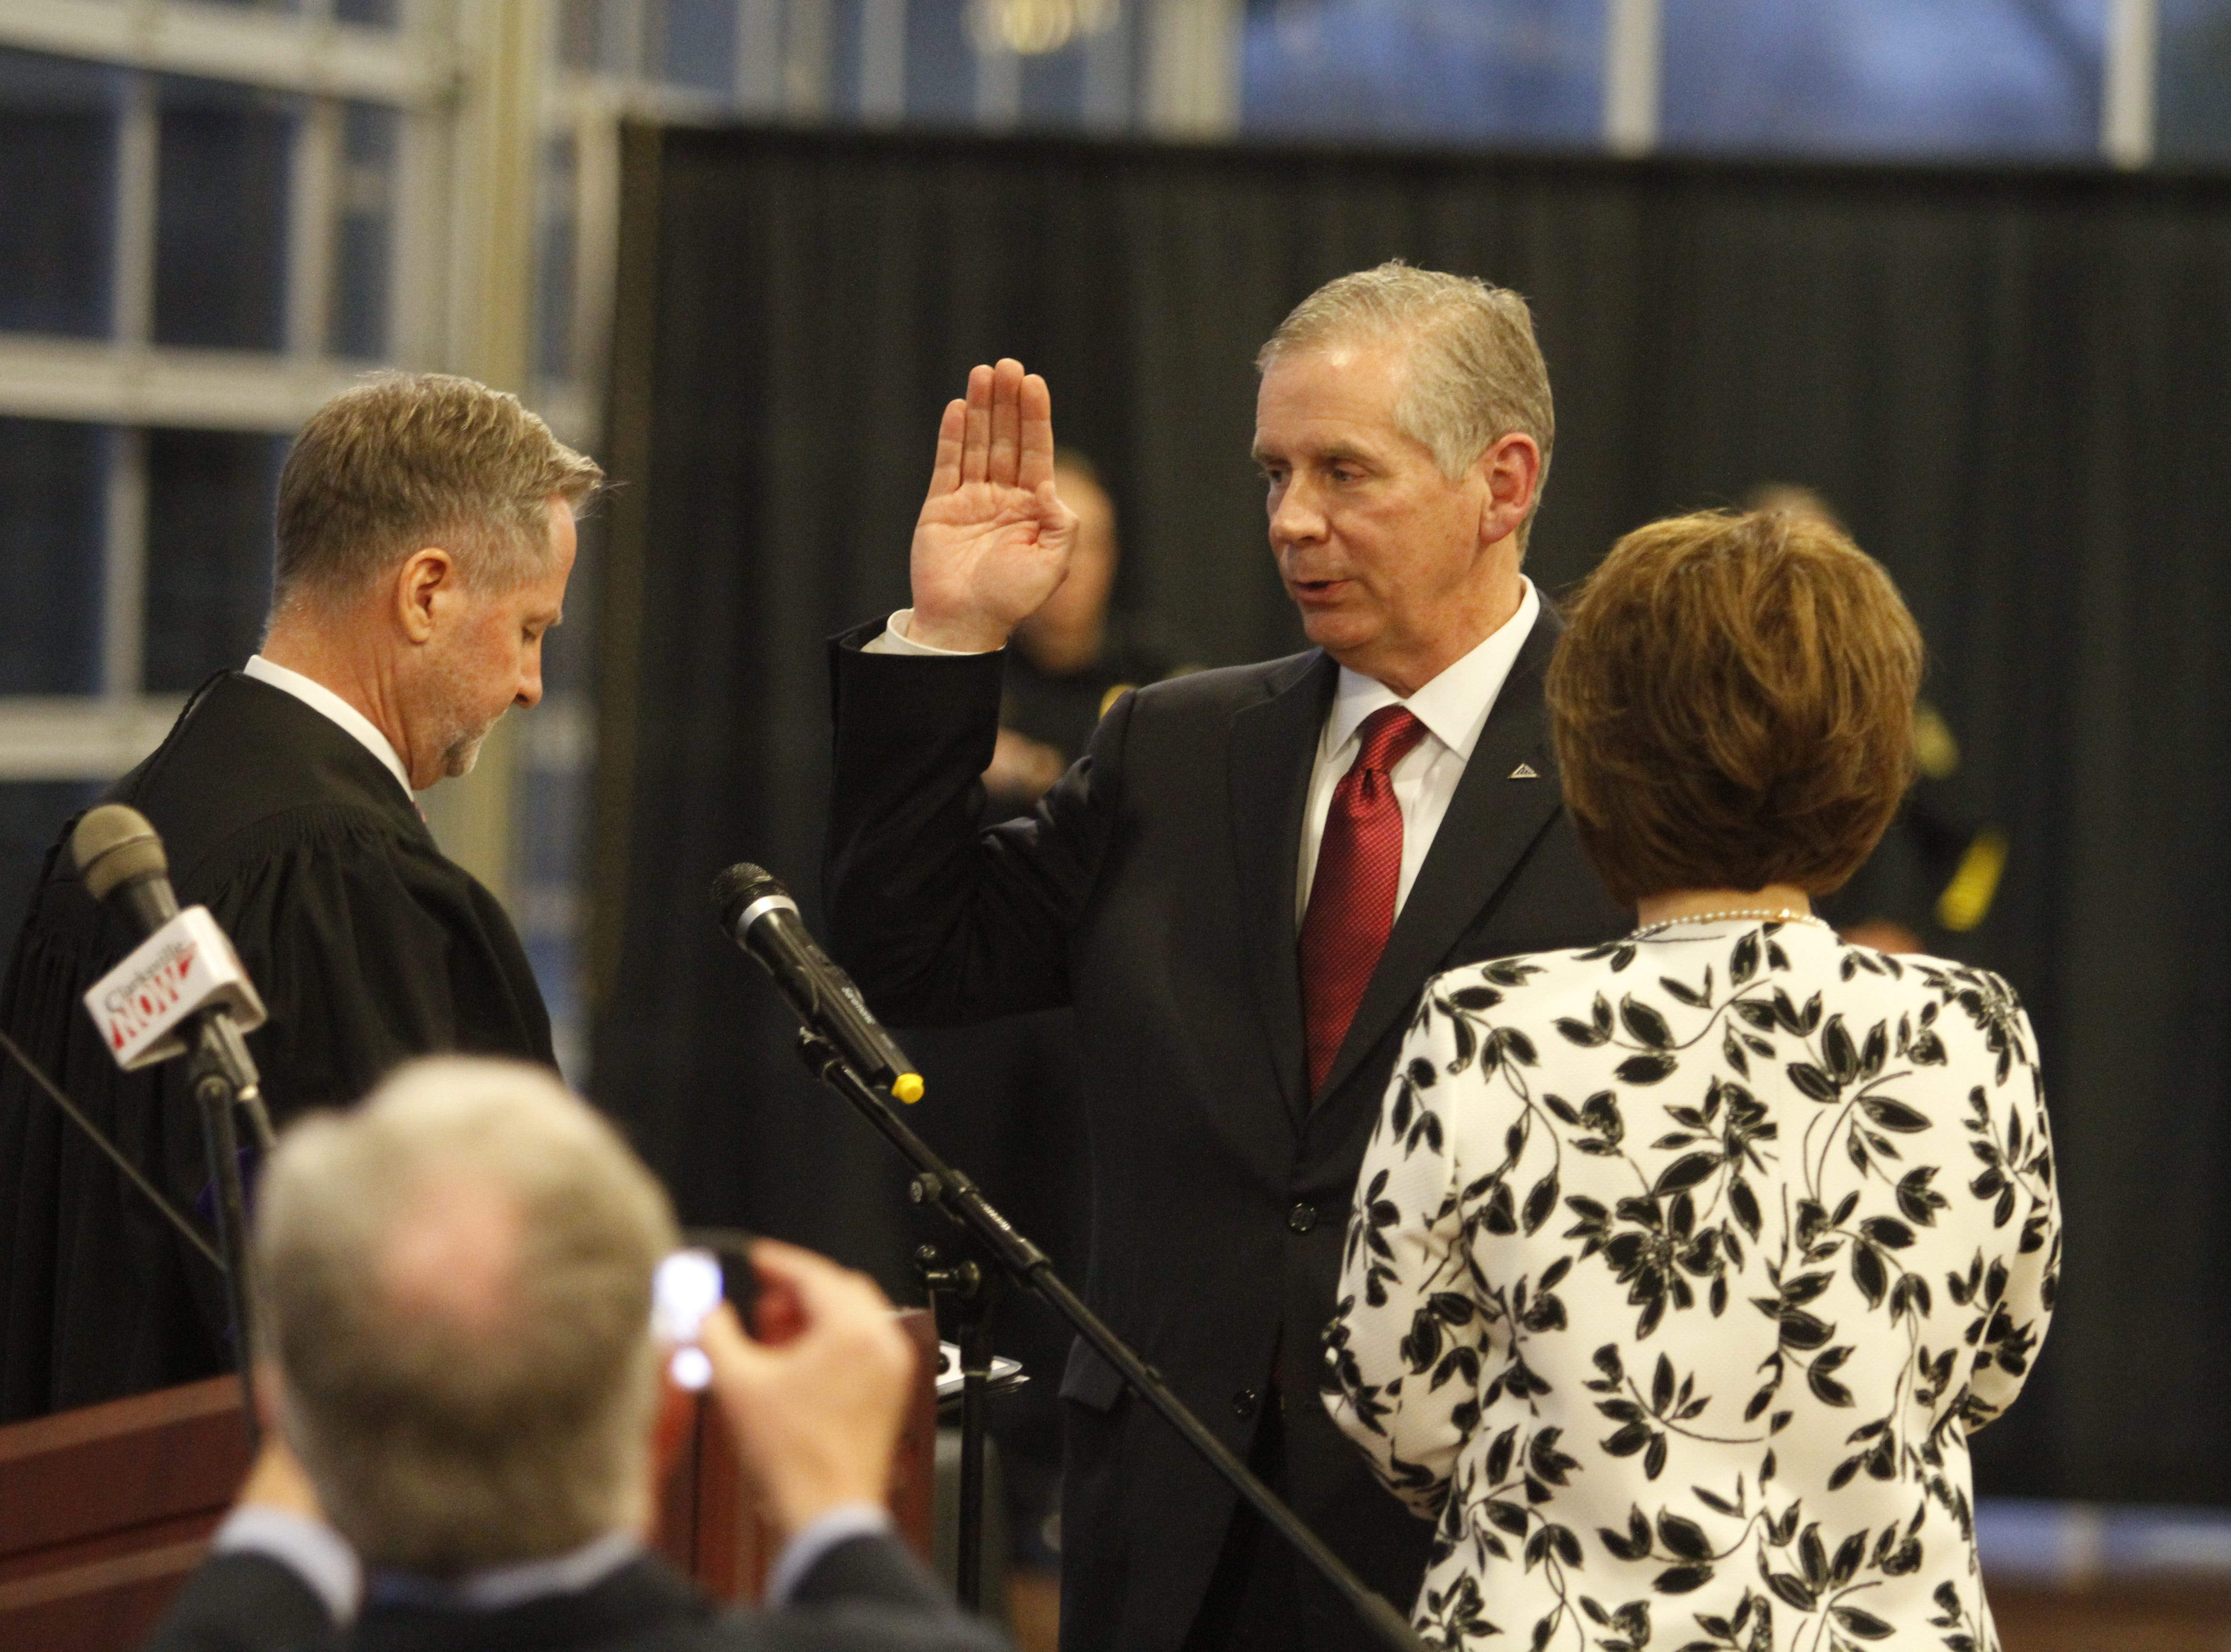 Judge Tim Barnes swears in Mayor Joe Pitts on Wednesday, Jan. 2, 2019, at the Wilma Rudolph Event Center.